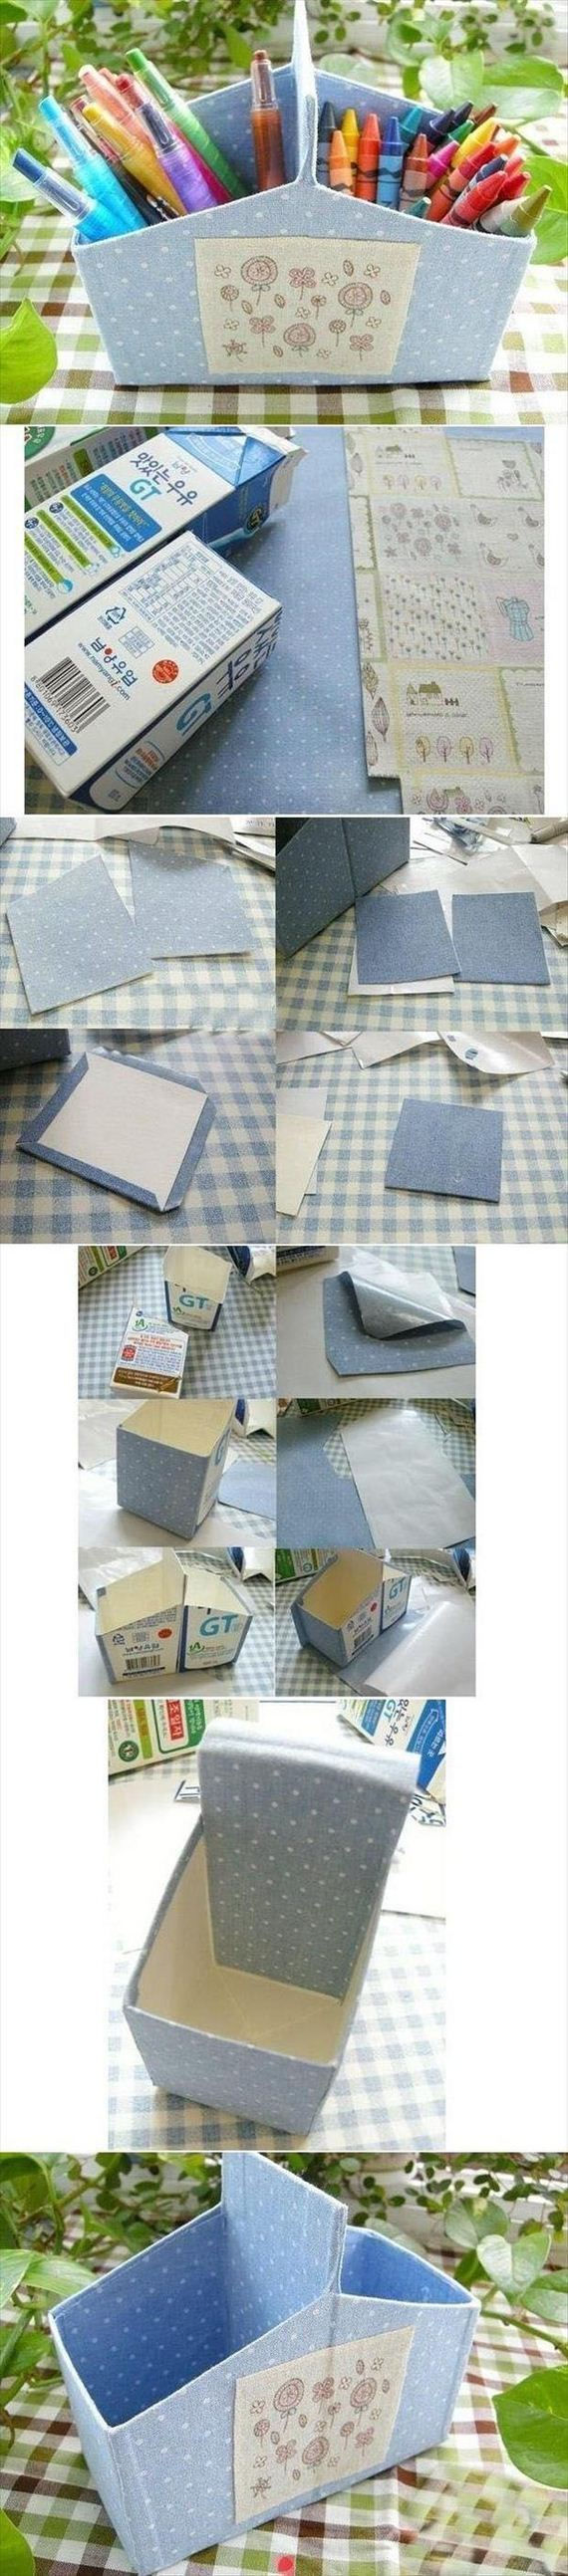 19-diy-home-craft-ideas-and-tips-thrifty-home-decor-1